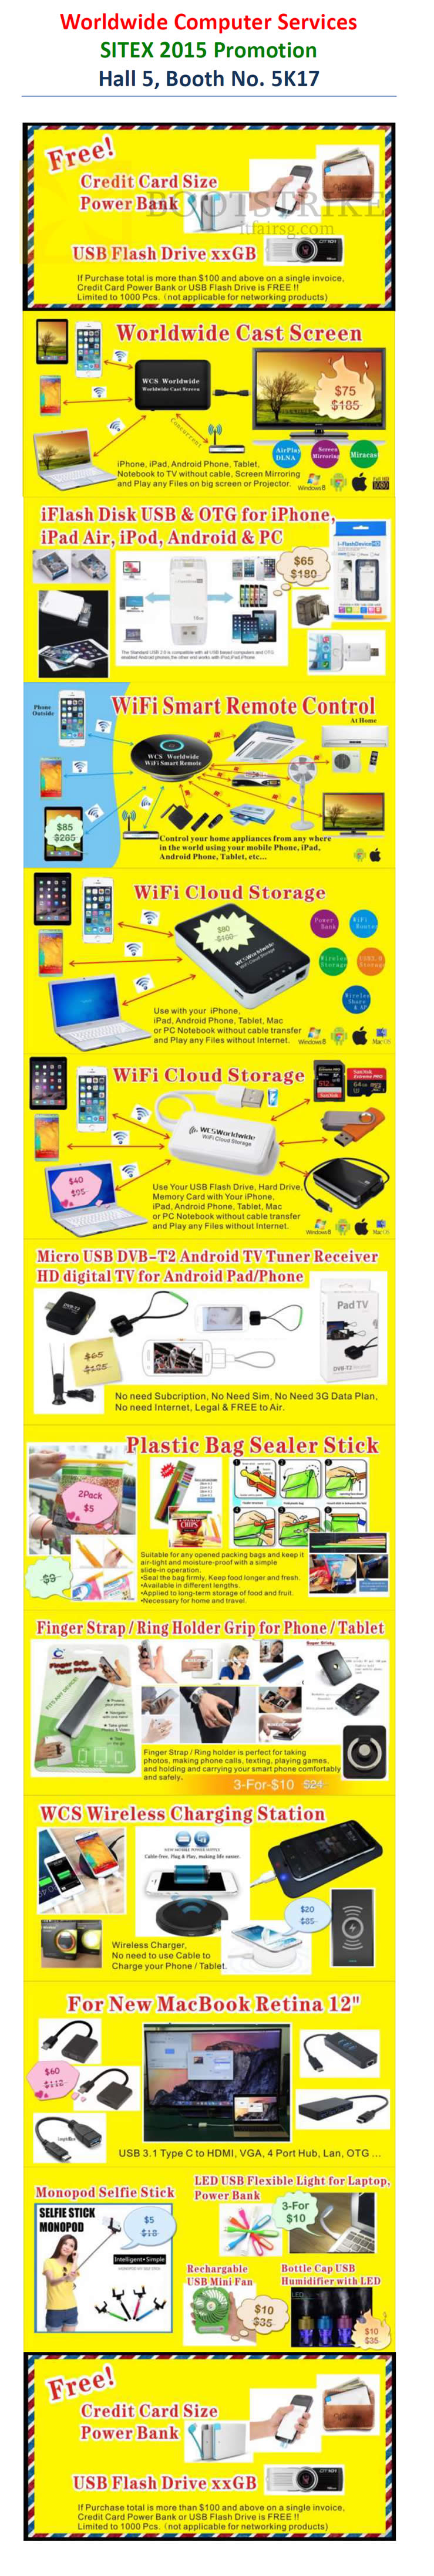 SITEX 2015 price list image brochure of Worldwide Computer Services Cast Screen, IFlash Disk USB, Wifi Smart Remote Control, Cloud Storage, Plastic Bag Sealer Stick, Finger Strap For Phone